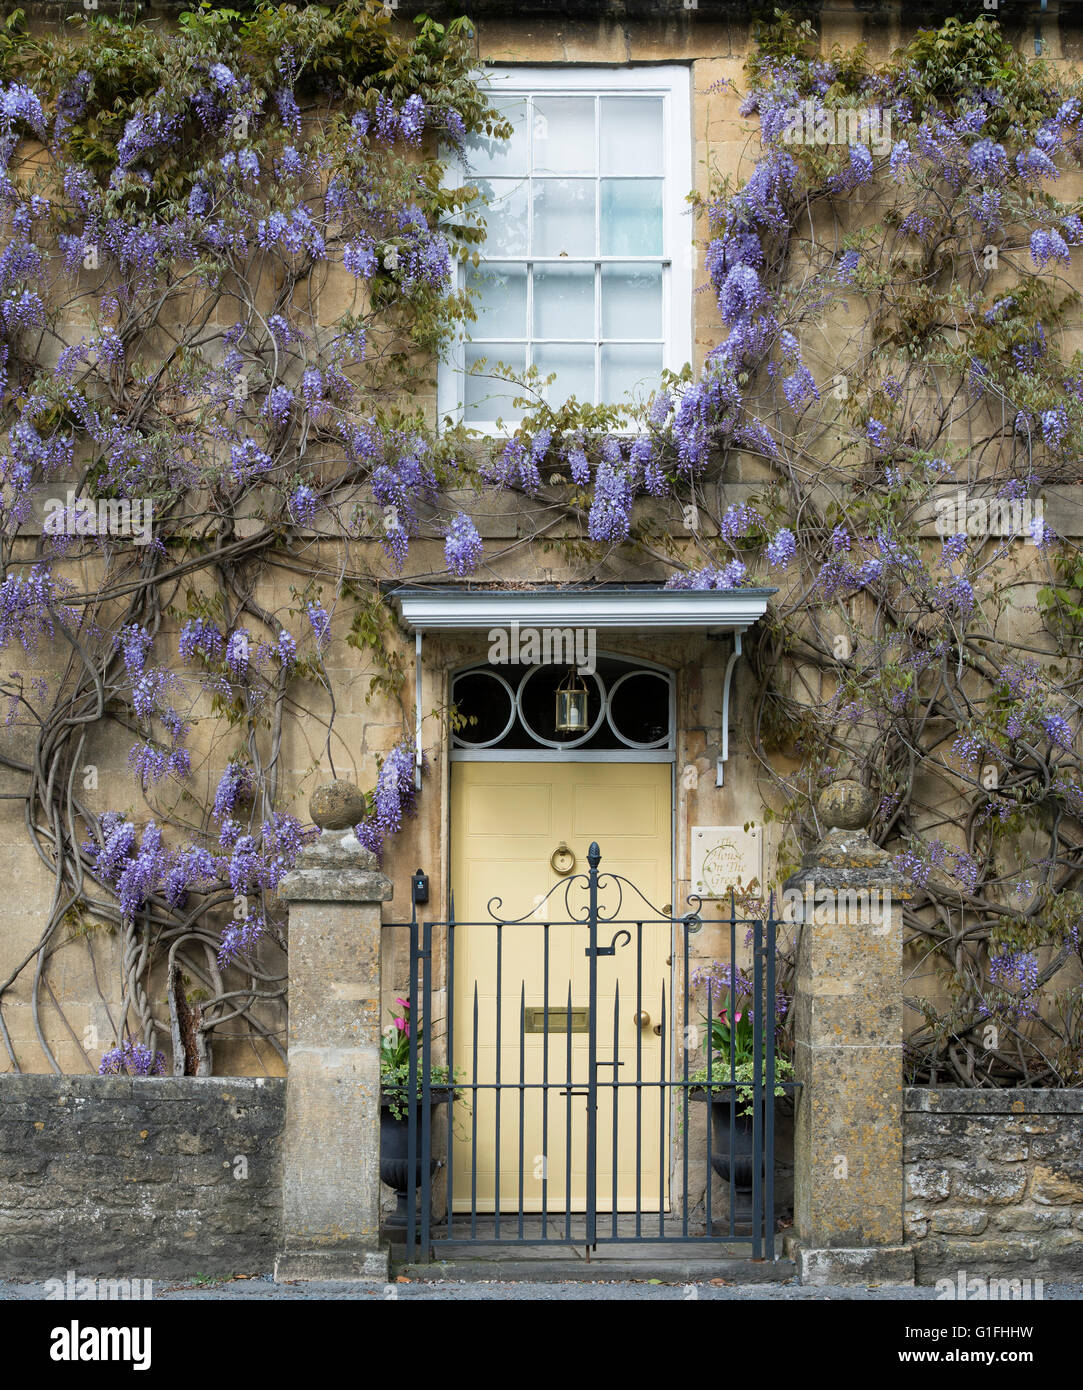 Wisteria on a cotswold stone house, Broadway, Cotswolds, Worcestershire, England - Stock Image